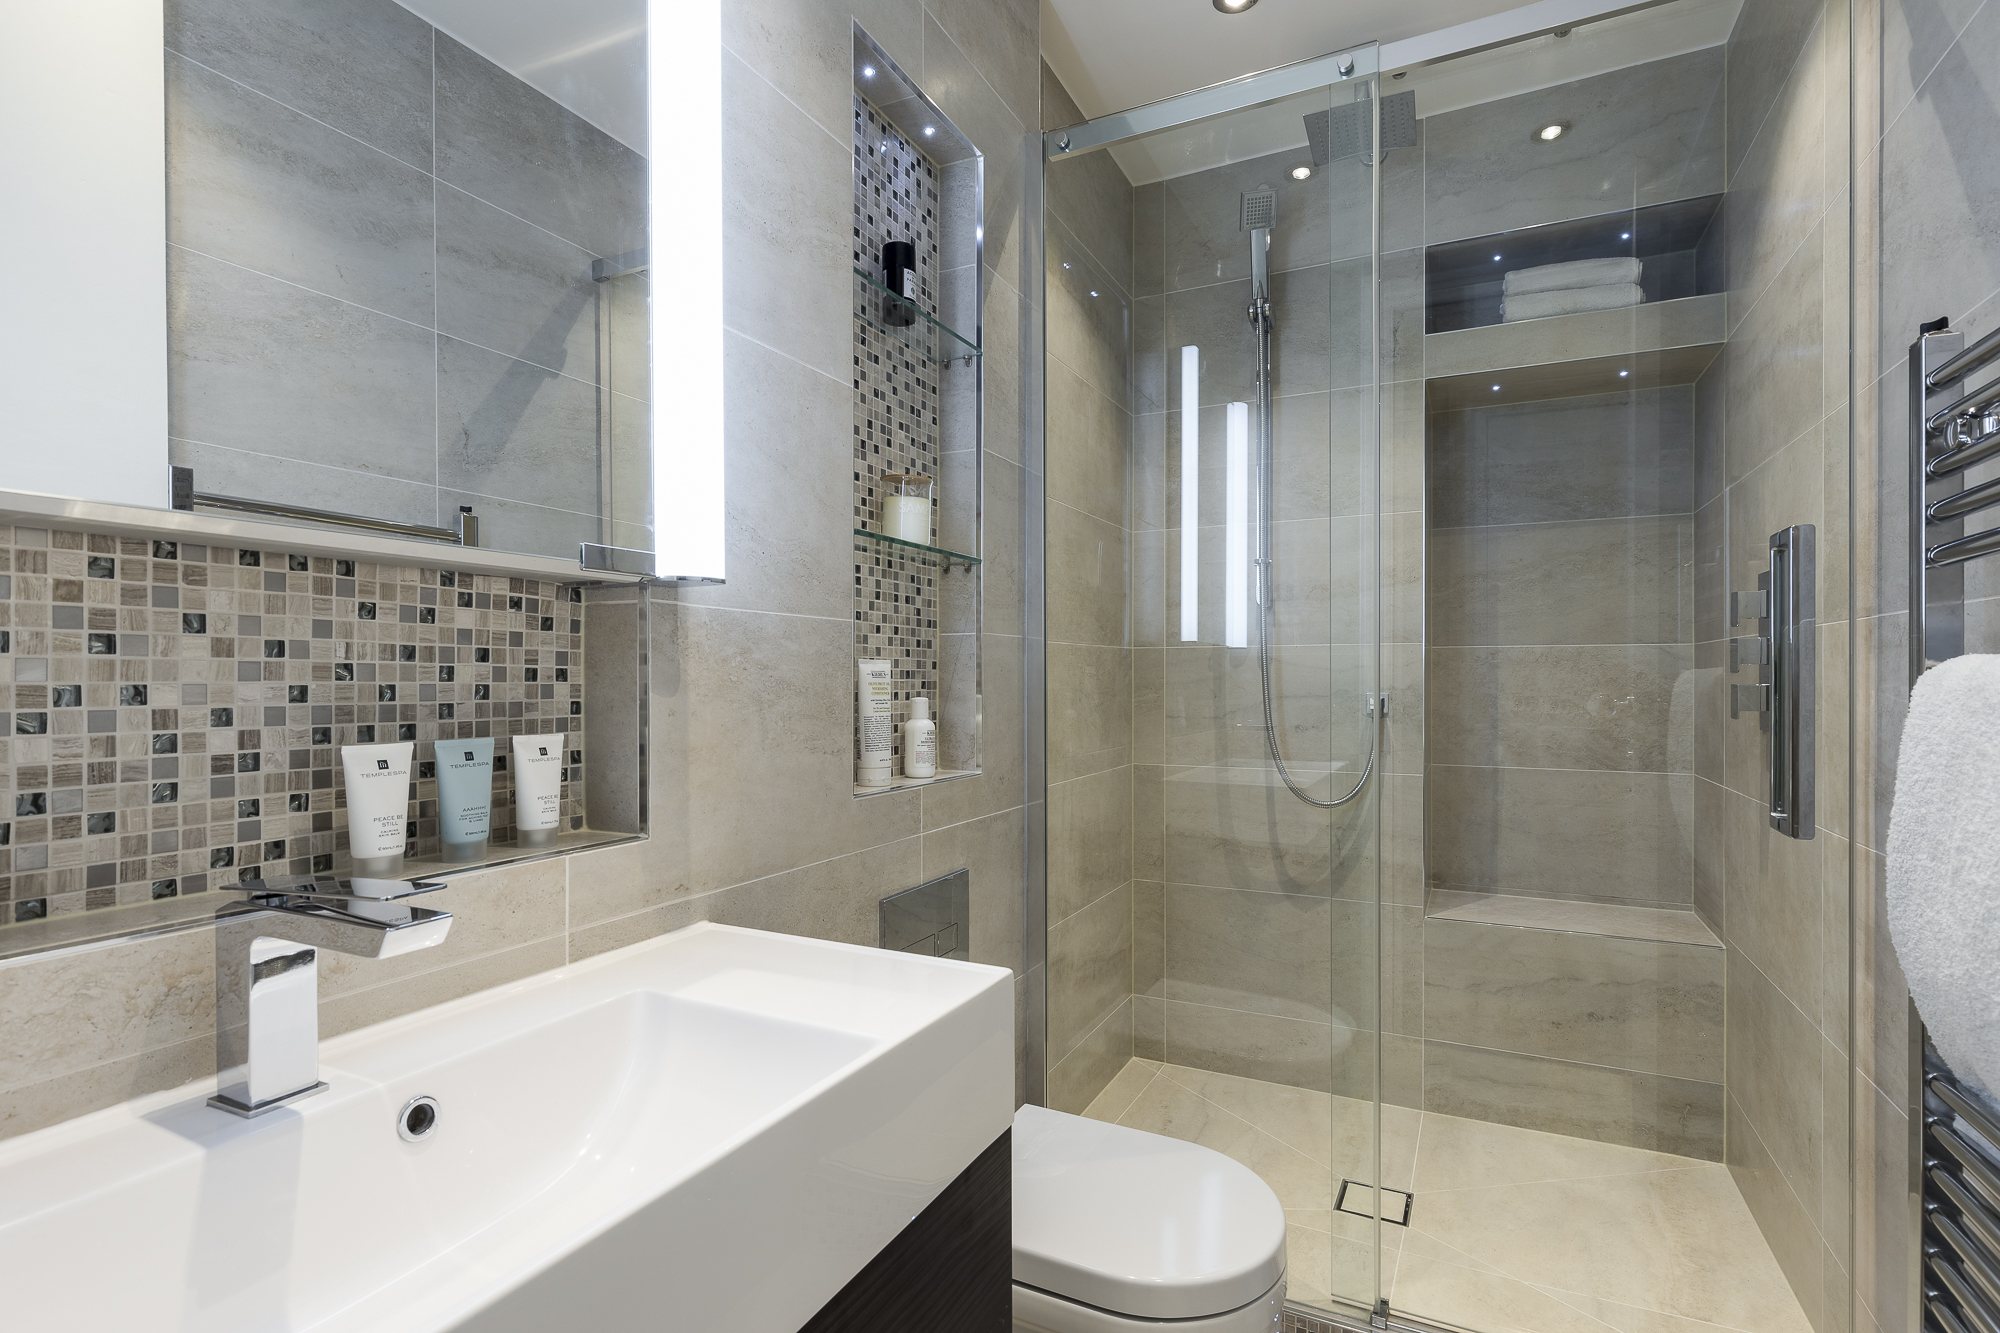 5 Small Bathroom Shower Design Ideas The London Bath Co